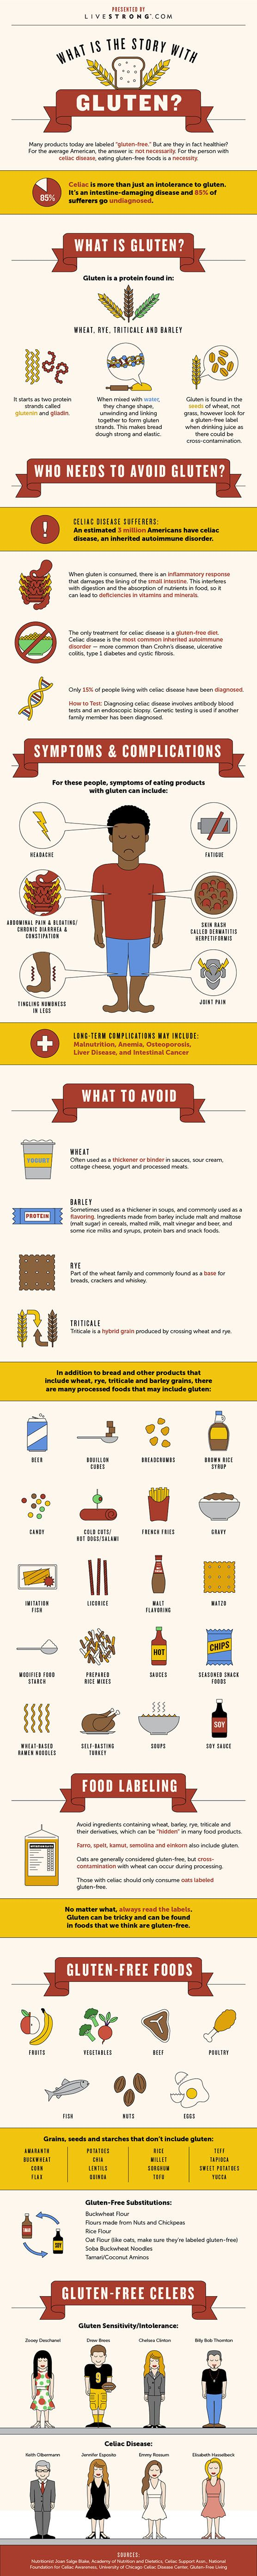 Gluten infographic   Gluten-free packaging is everywhere, but many people still don't seem to know what gluten is and why they might want to avoid it. We hope this infographic will help to solve all the confusing questions about gluten. (Gluten, by the way, is a protein found in wheat, rye, triticale and barley.)